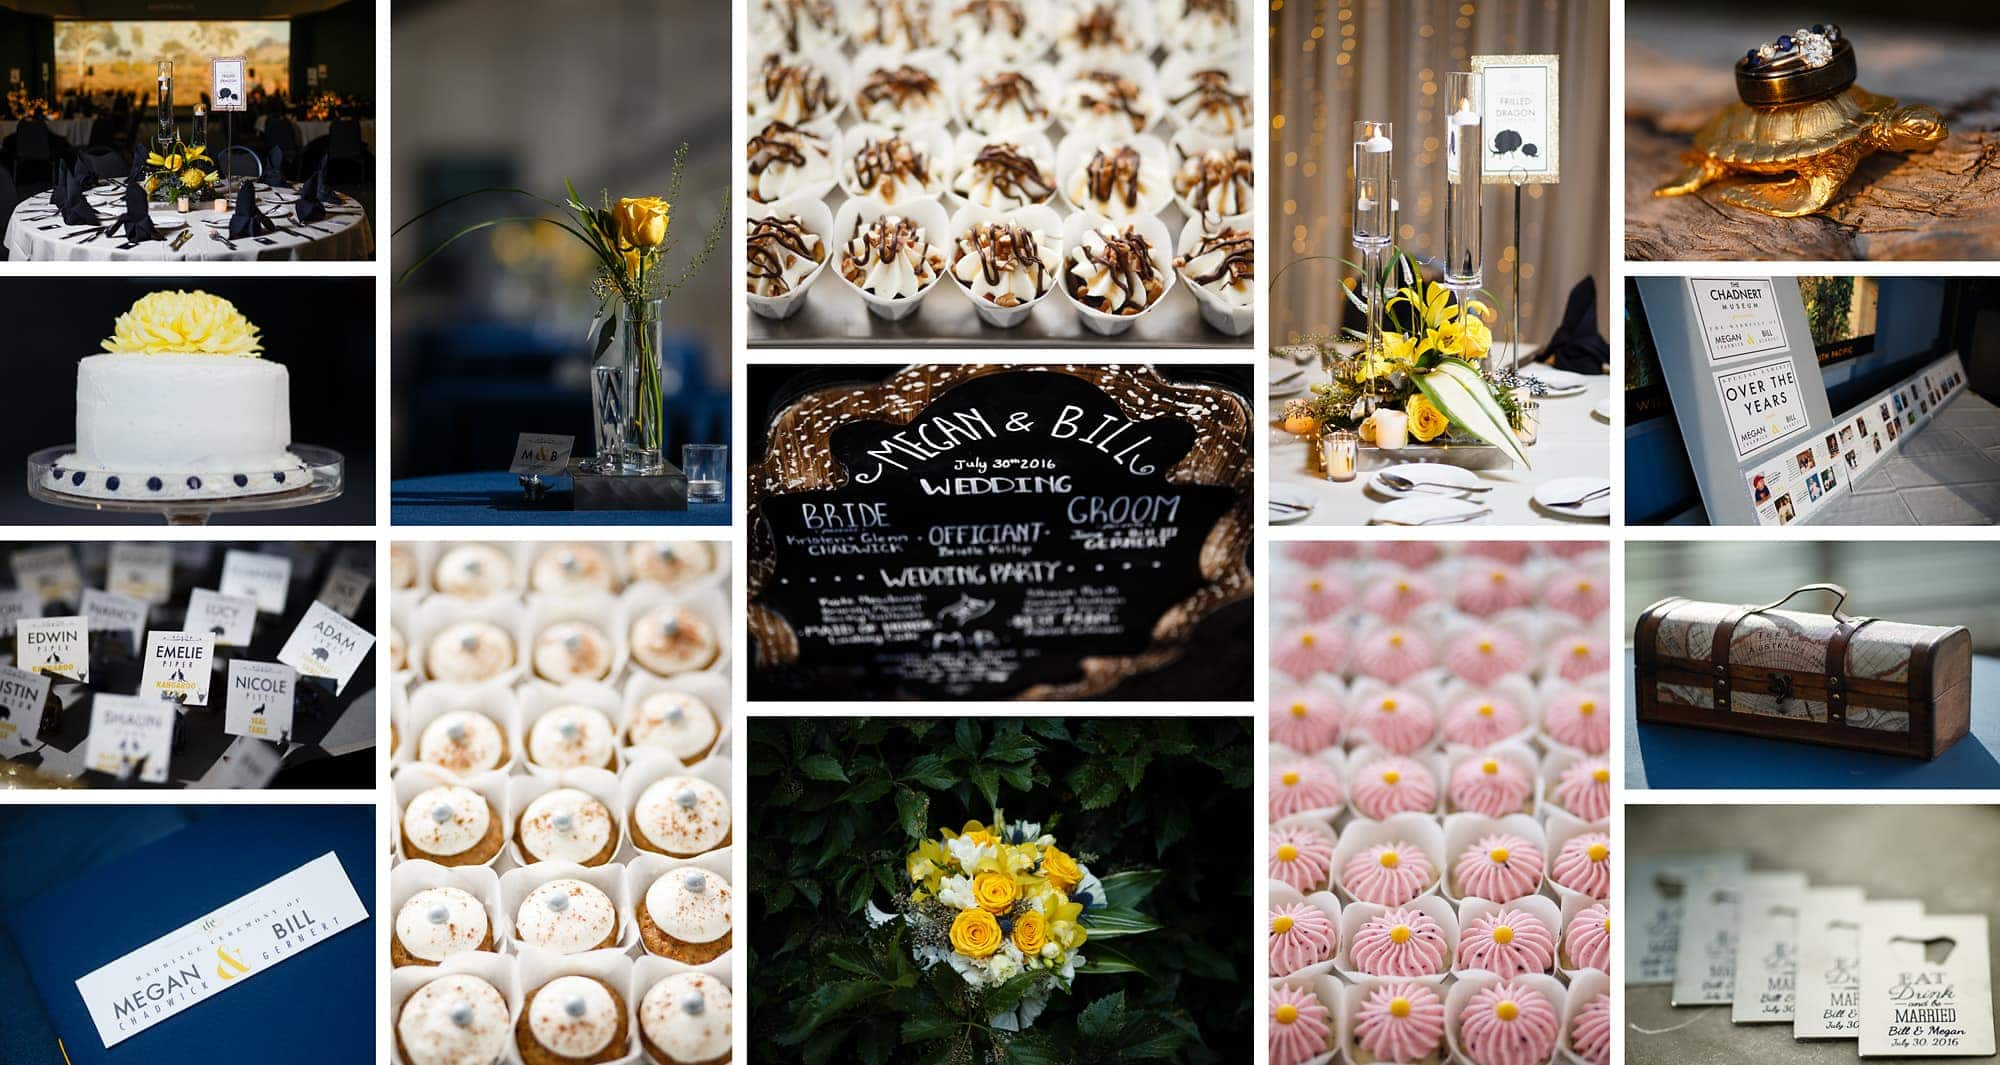 Details from the yellow and blue themed wedding at the Denver Museum of Nature and Science along with cupcakes and flowers